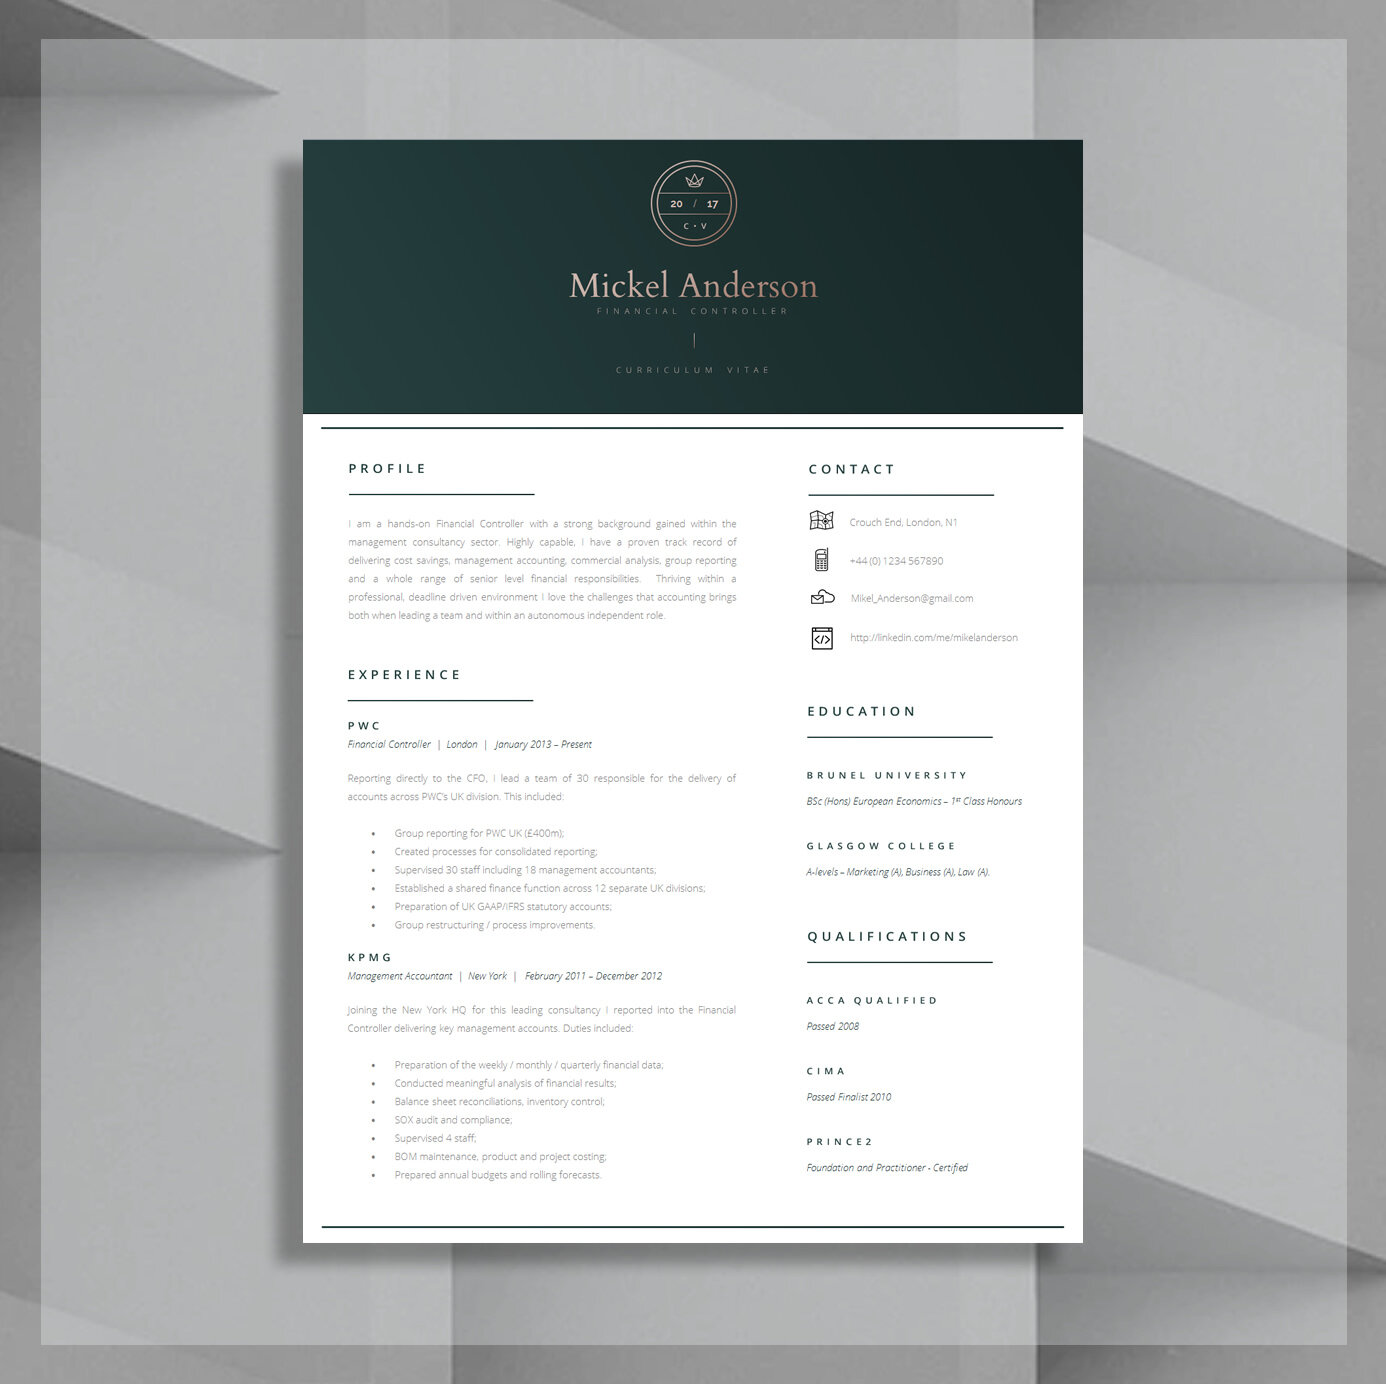 Finance CV Template / Accountancy CV Template / Modern CV Template and  Cover Letter Template + Advice | "|1386|1384|?|cba615eff7e8351cc178bdcc33f4c529|False|UNLIKELY|0.3218259811401367